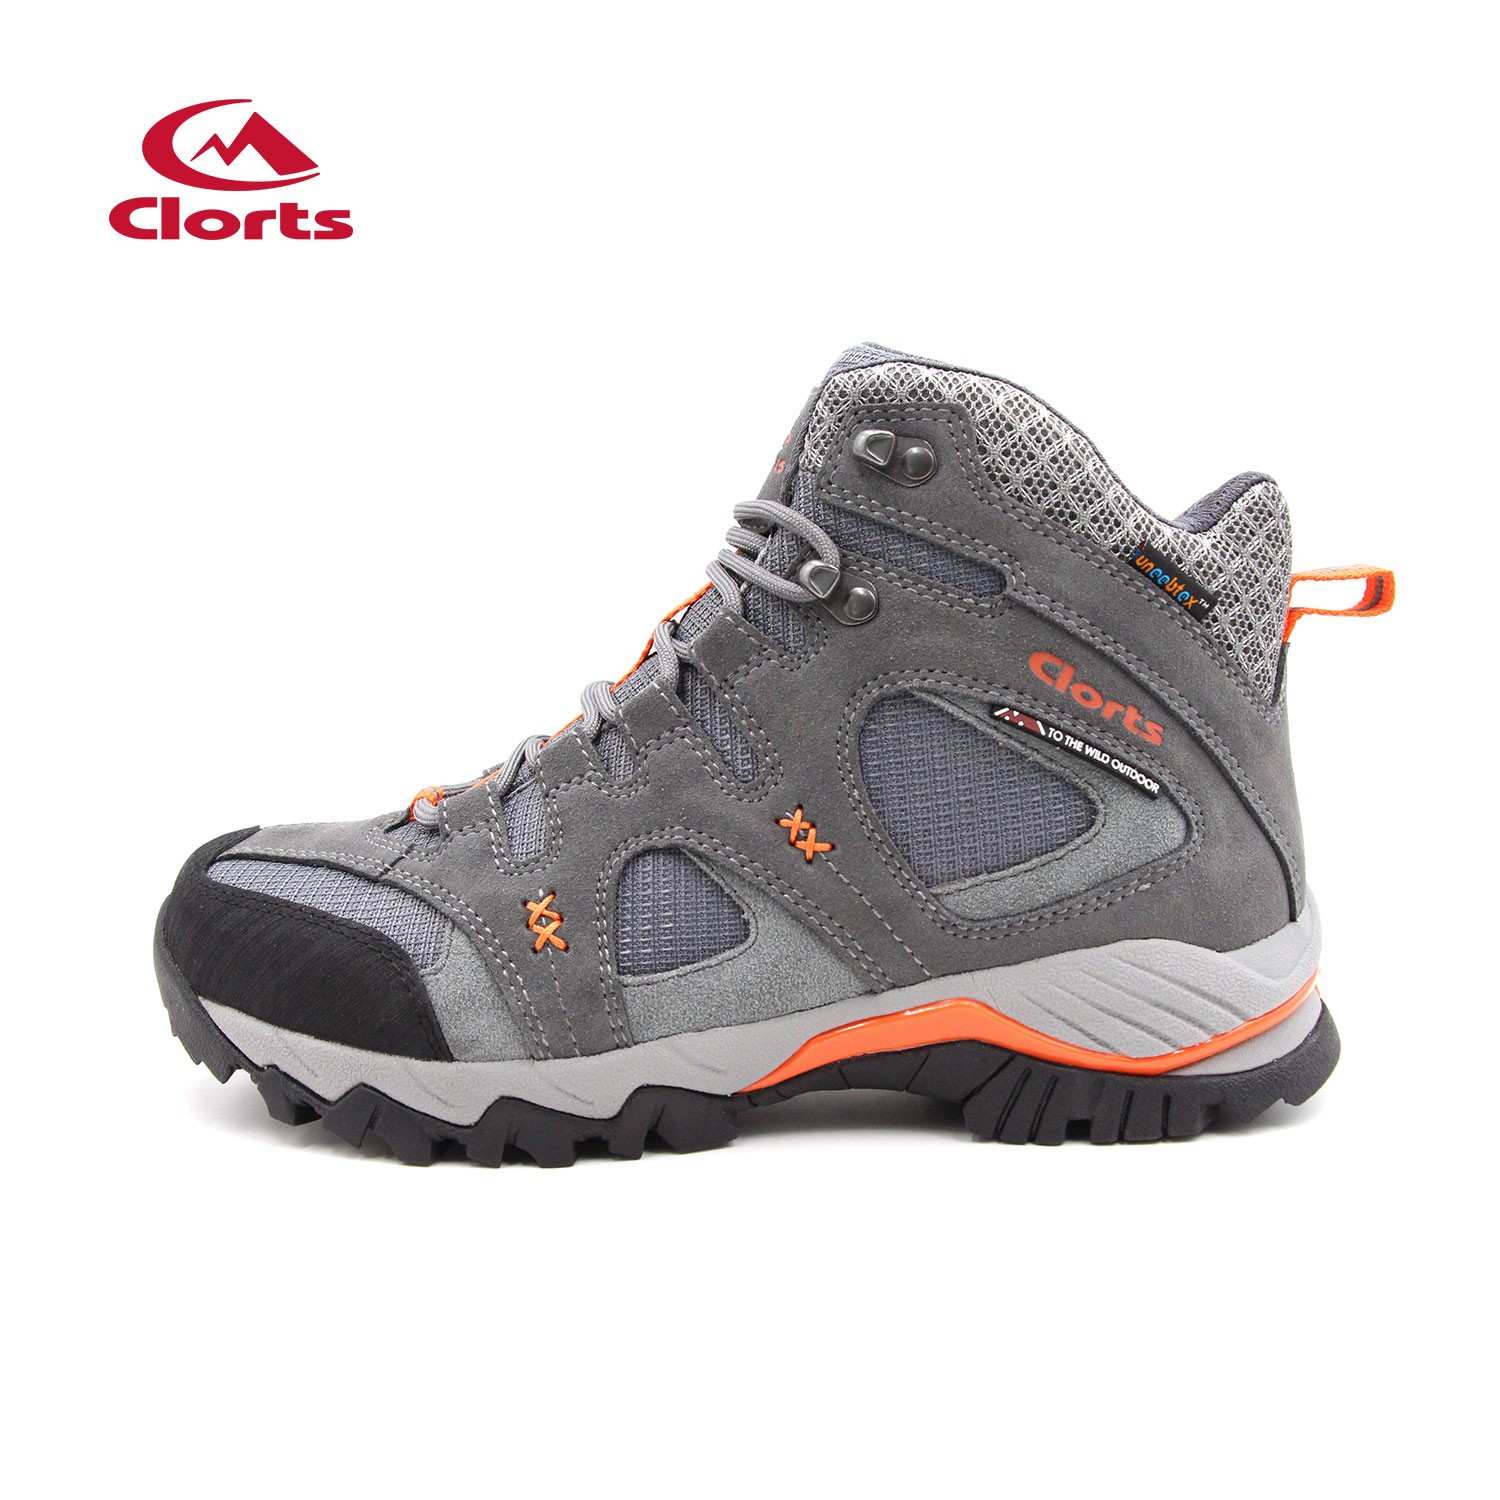 Clorts Adults Outdoor Waterproof Hiking Boots Grey